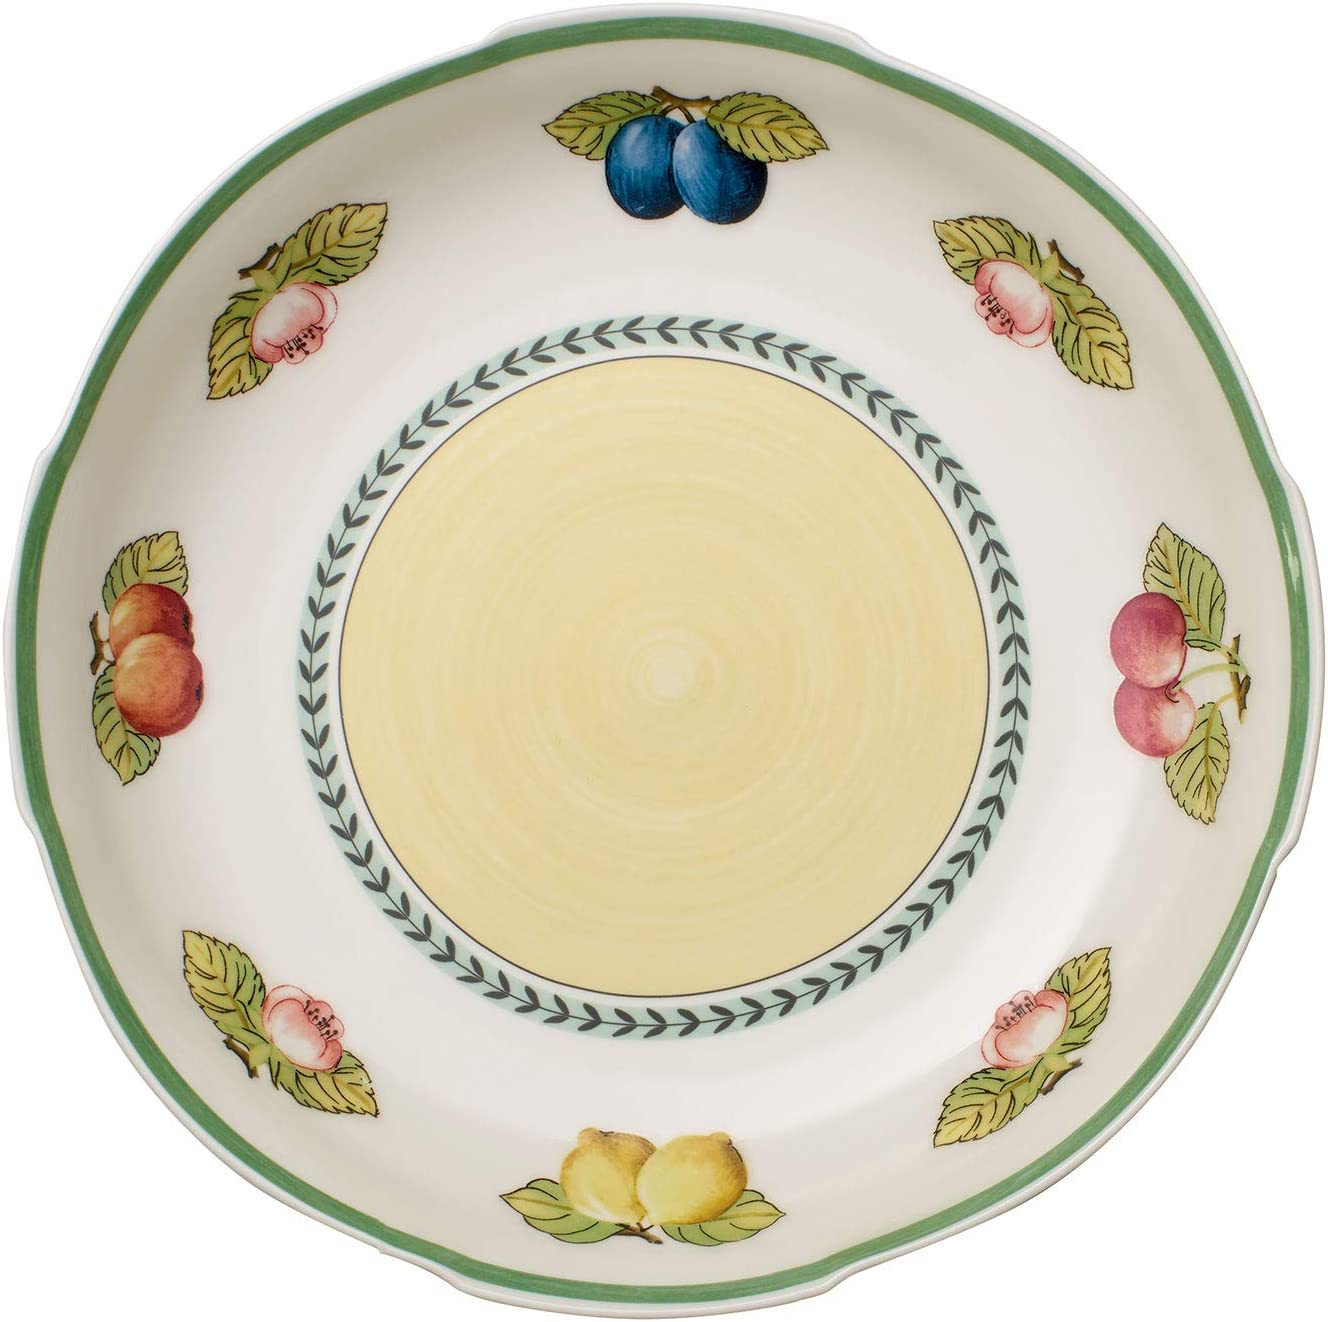 Villeroy & Boch French Garden Fleurence Pasta Serving Bowl, 15 in, White/Colored